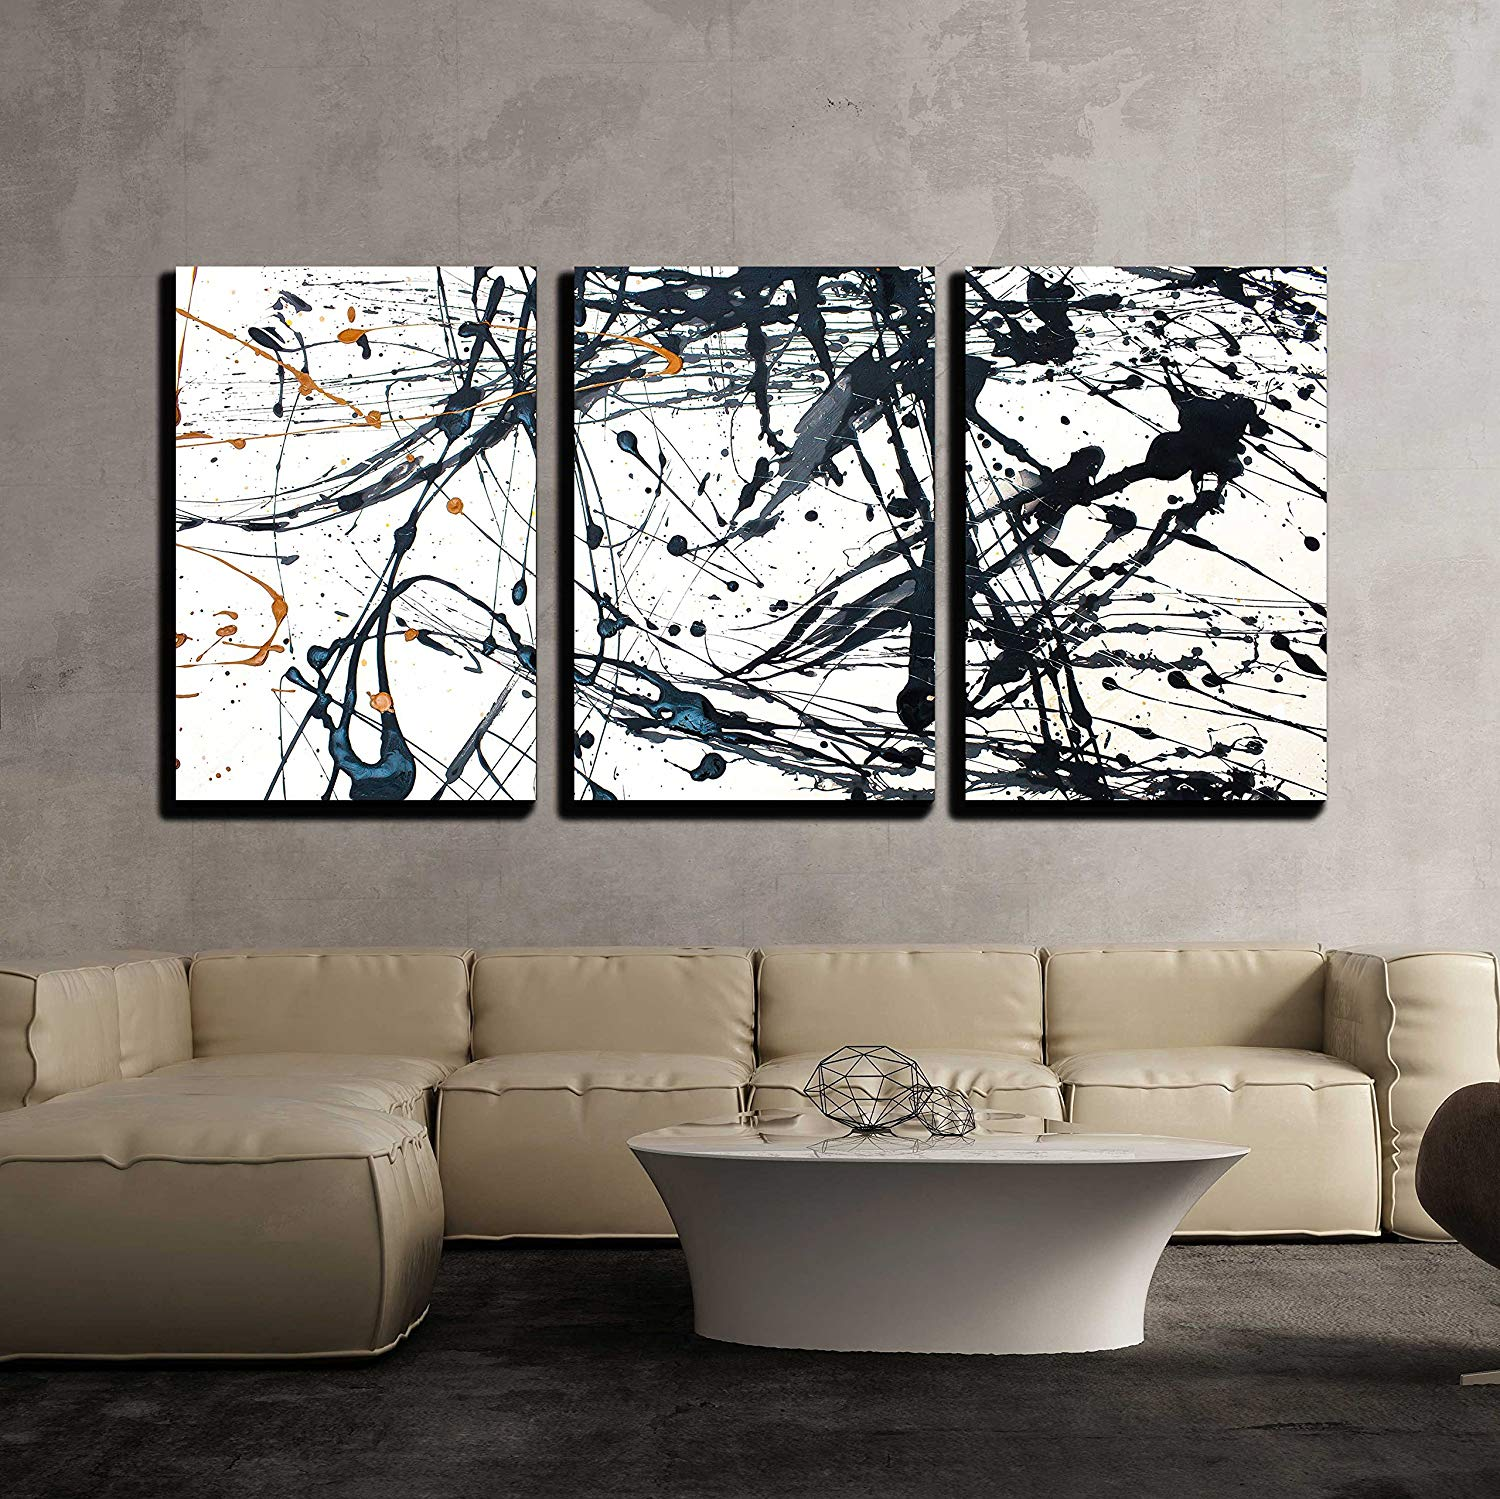 Wall20 20 Piece Canvas Wall Art   Dead Tree Branch, Black and White ...